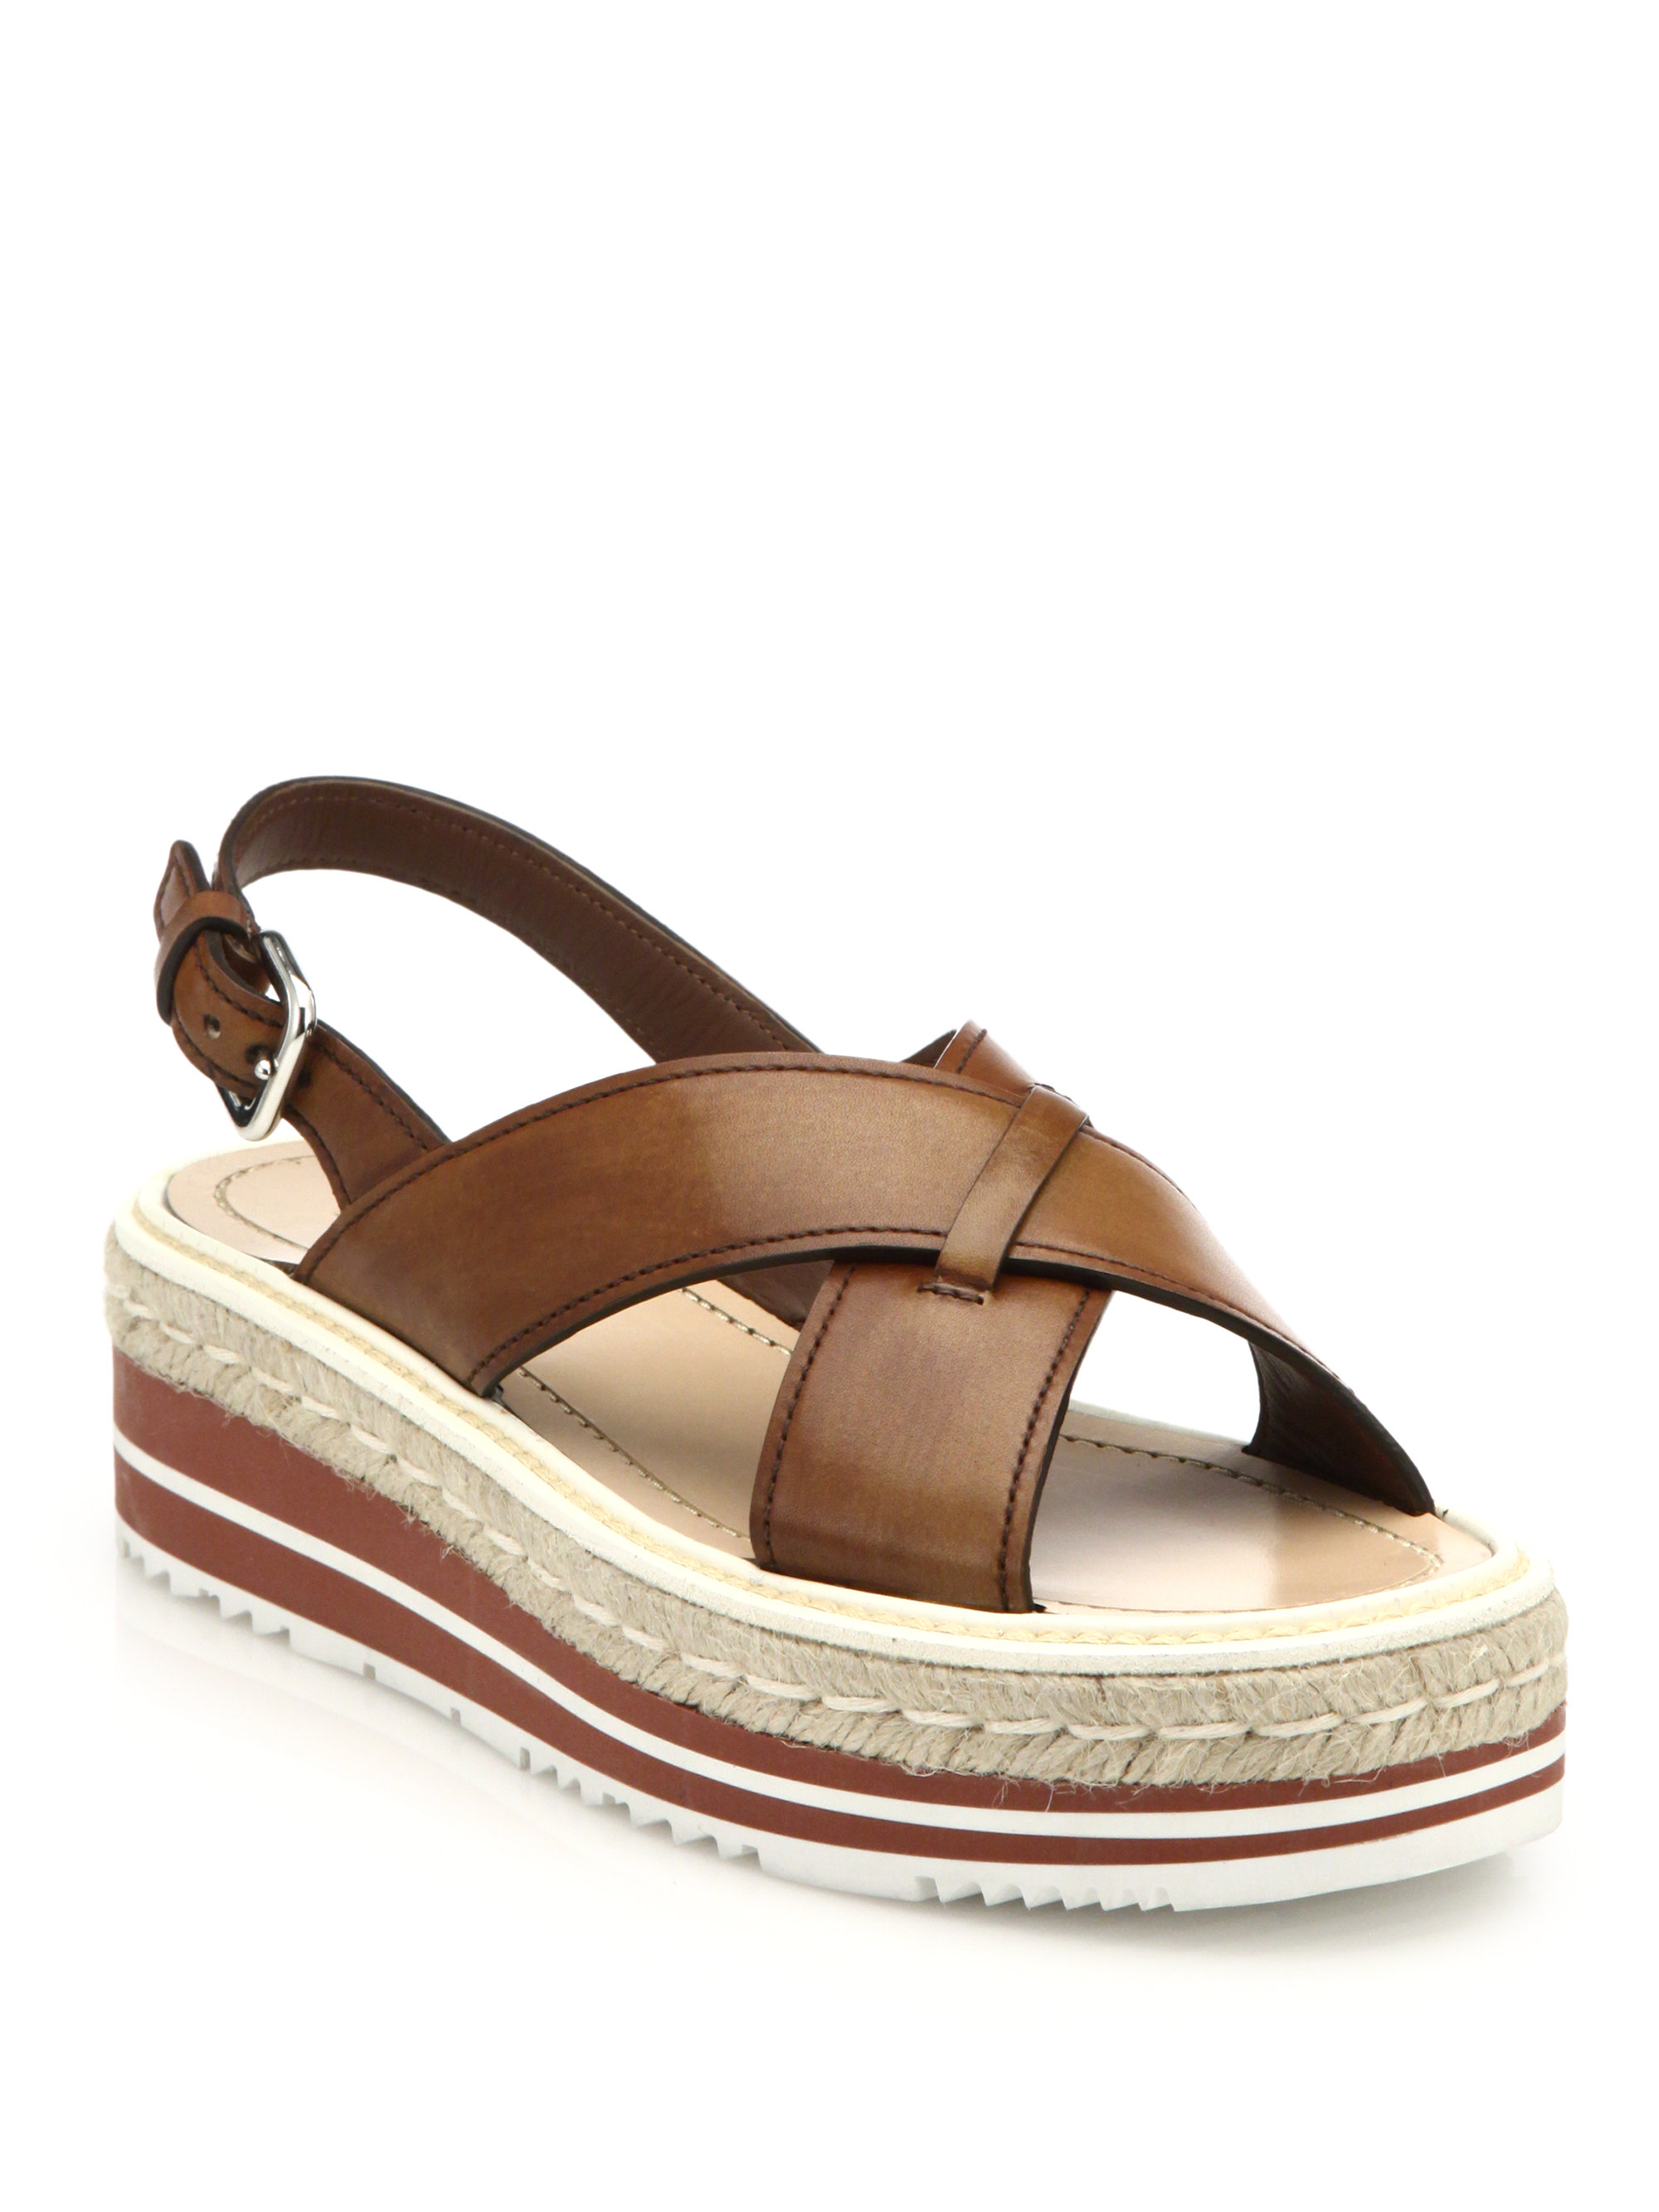 Prada Espadrille Amp Rubber Sole Leather Sandals In Brown Lyst